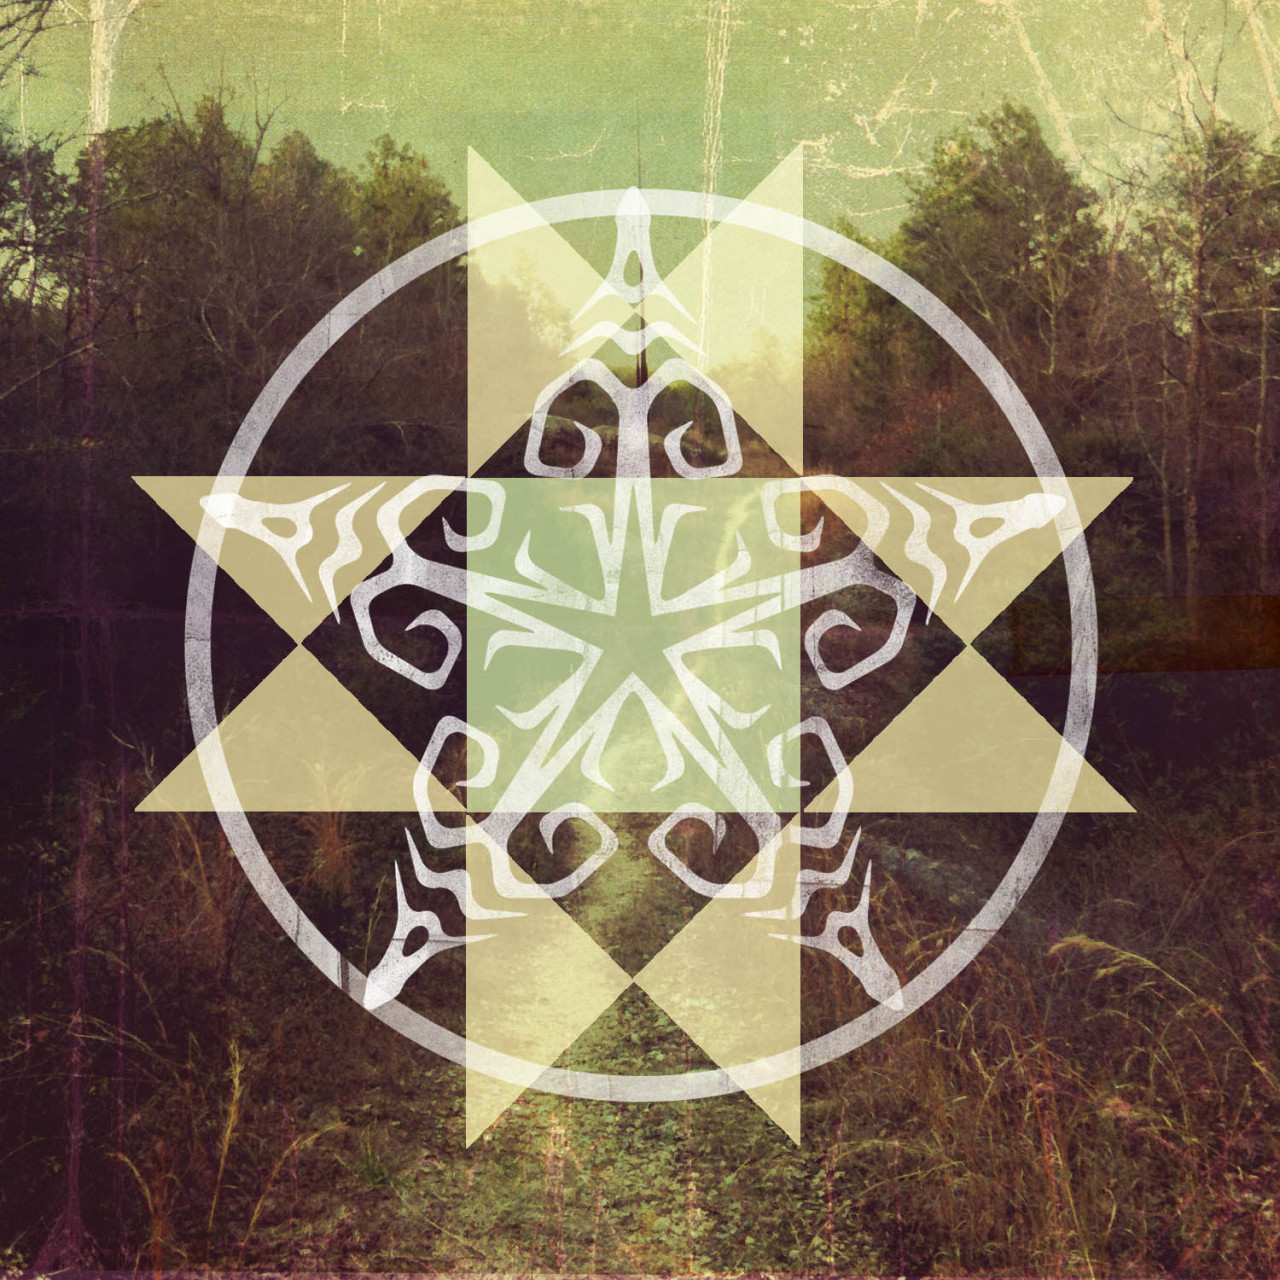 Check out Harvest Star Vol. 3 from the Harvest Star Folk Collective! Name your own price on Noisetrade and Bandcamp http://harveststar.bandcamp.com/album/harvest-star-vol-3 http://noisetrade.com/harveststar/harvest-star-spring-2013